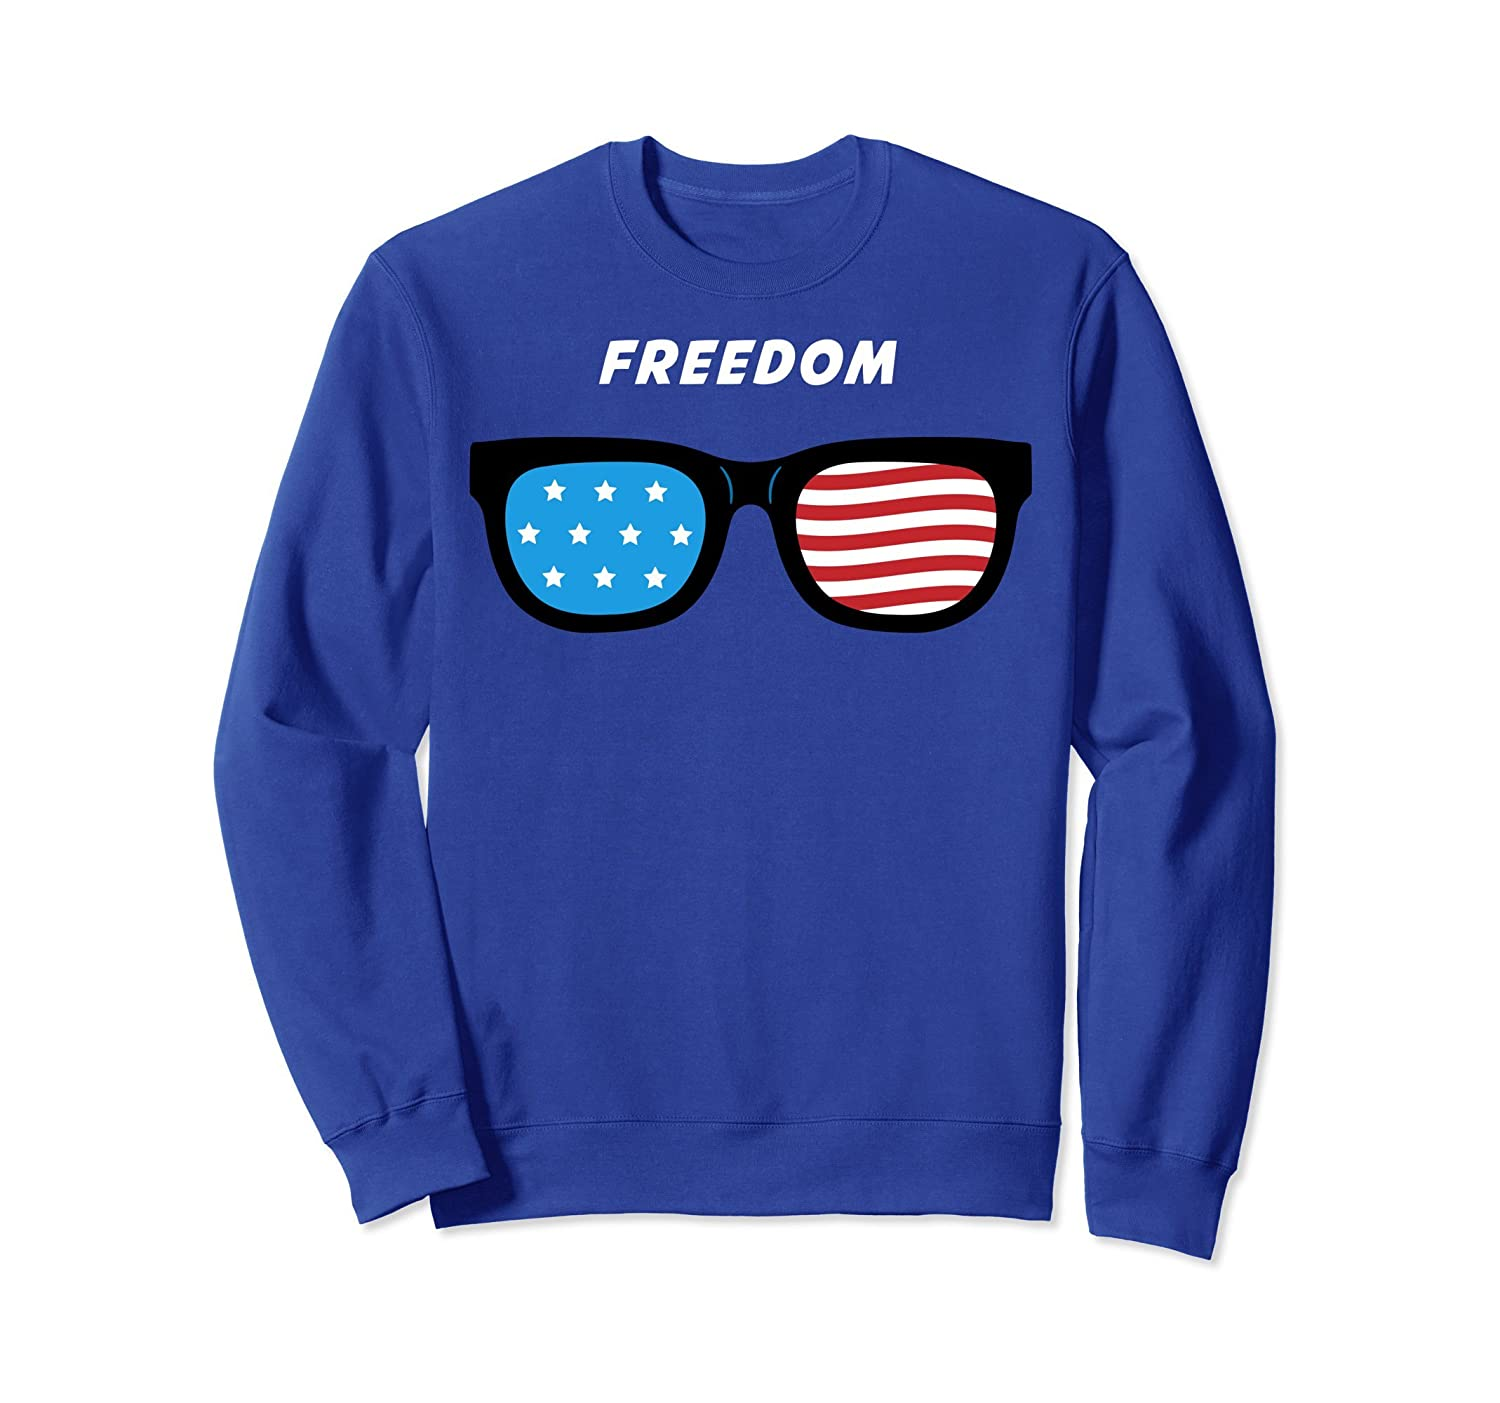 4th July Shirts for Men - Patriotic Freedom Sweatshirt-mt